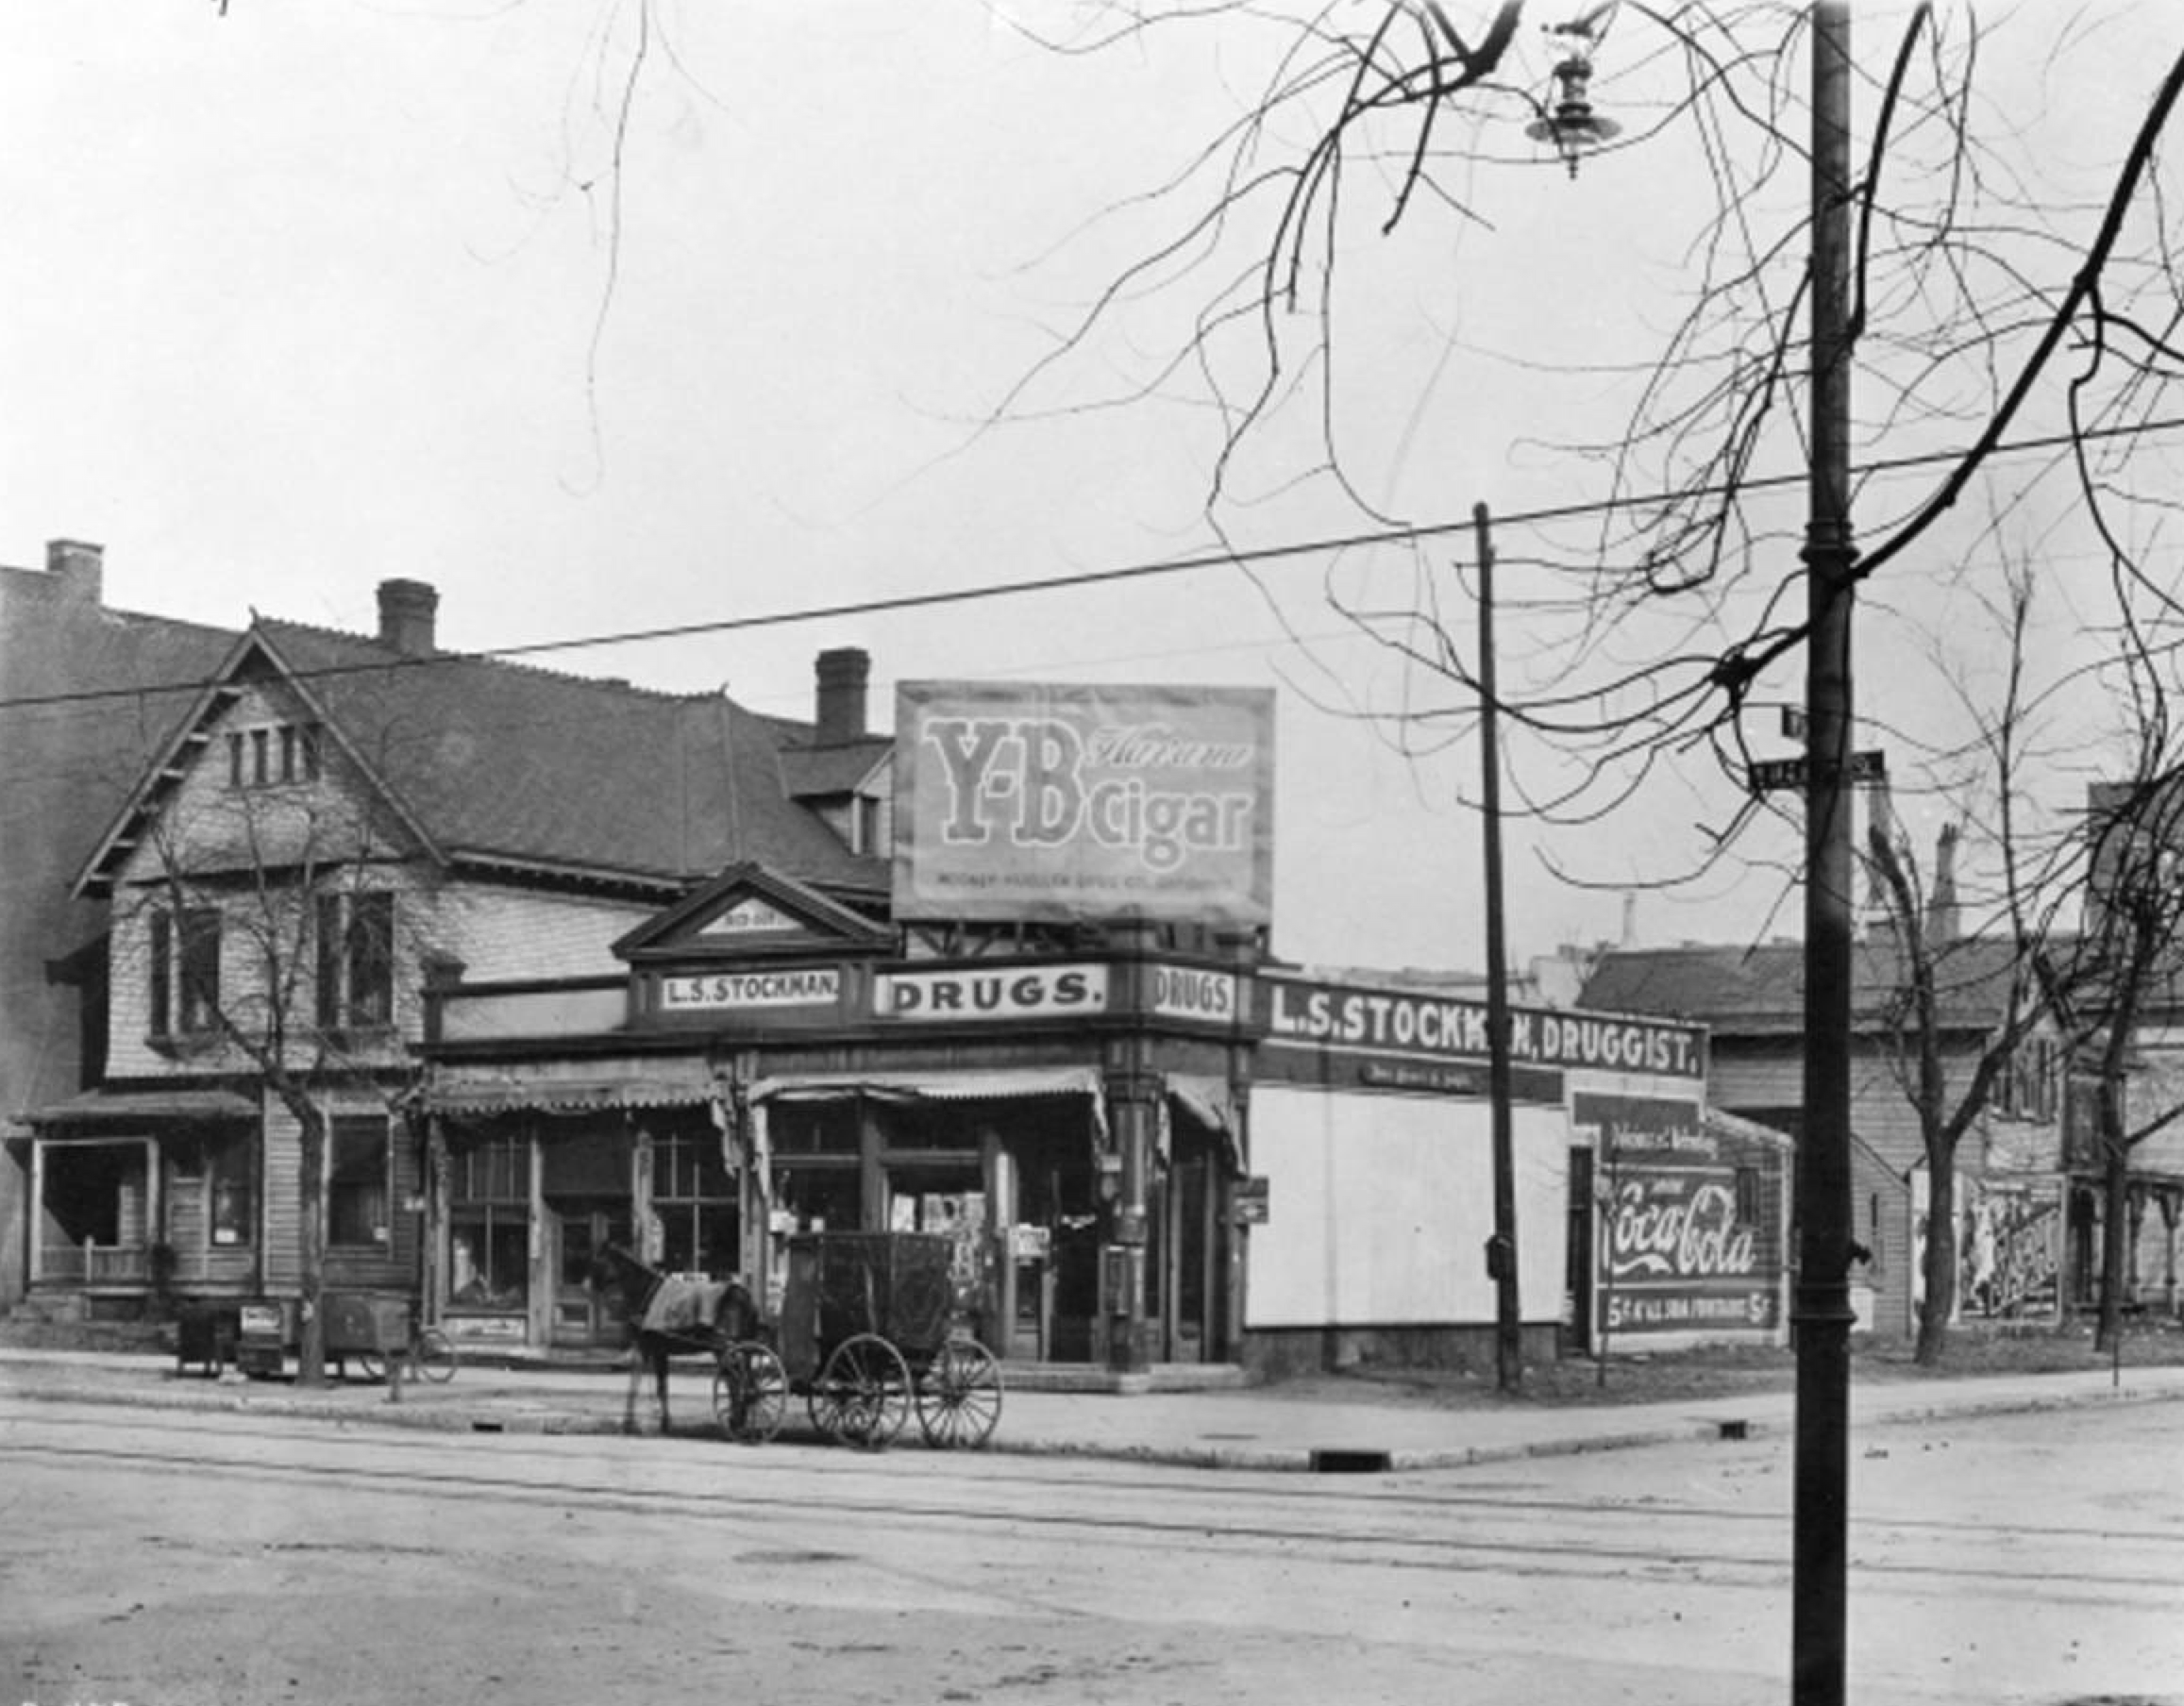 L.S. Stockman Drug Store, 501 N. Illinois Street